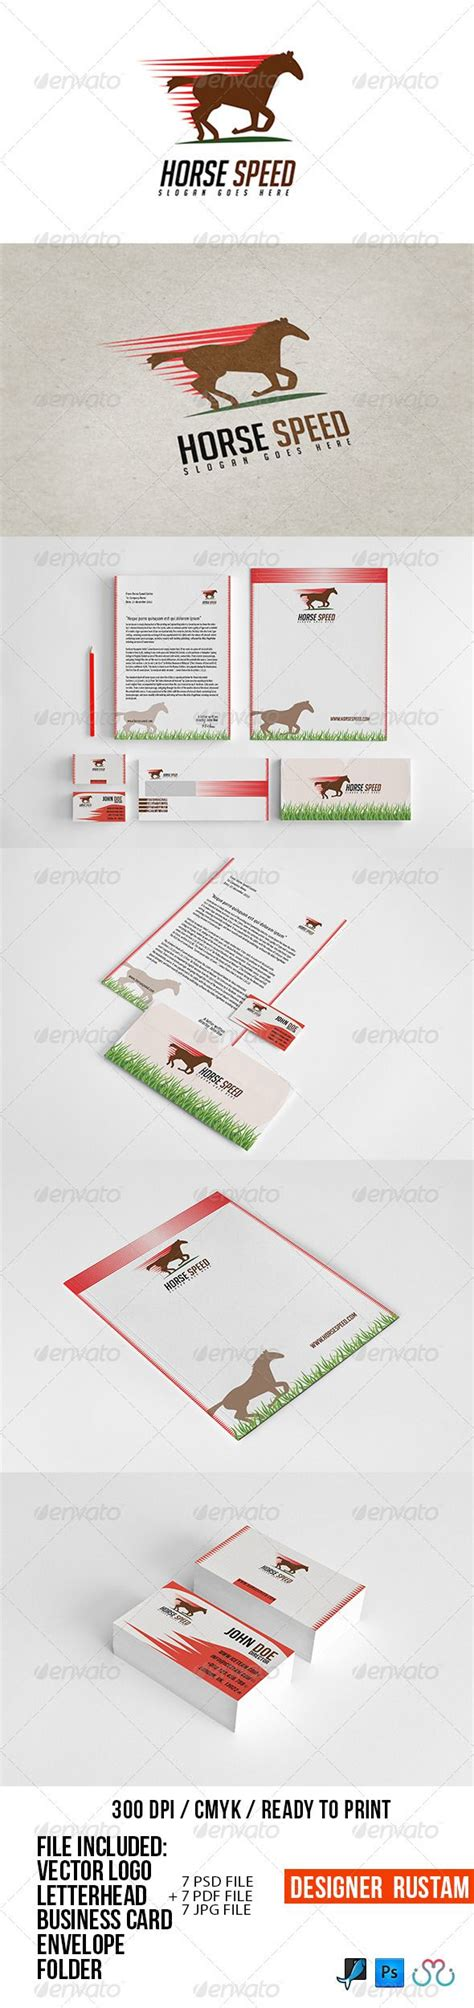 dafont bebas neue 105 best images about print templates on pinterest adobe